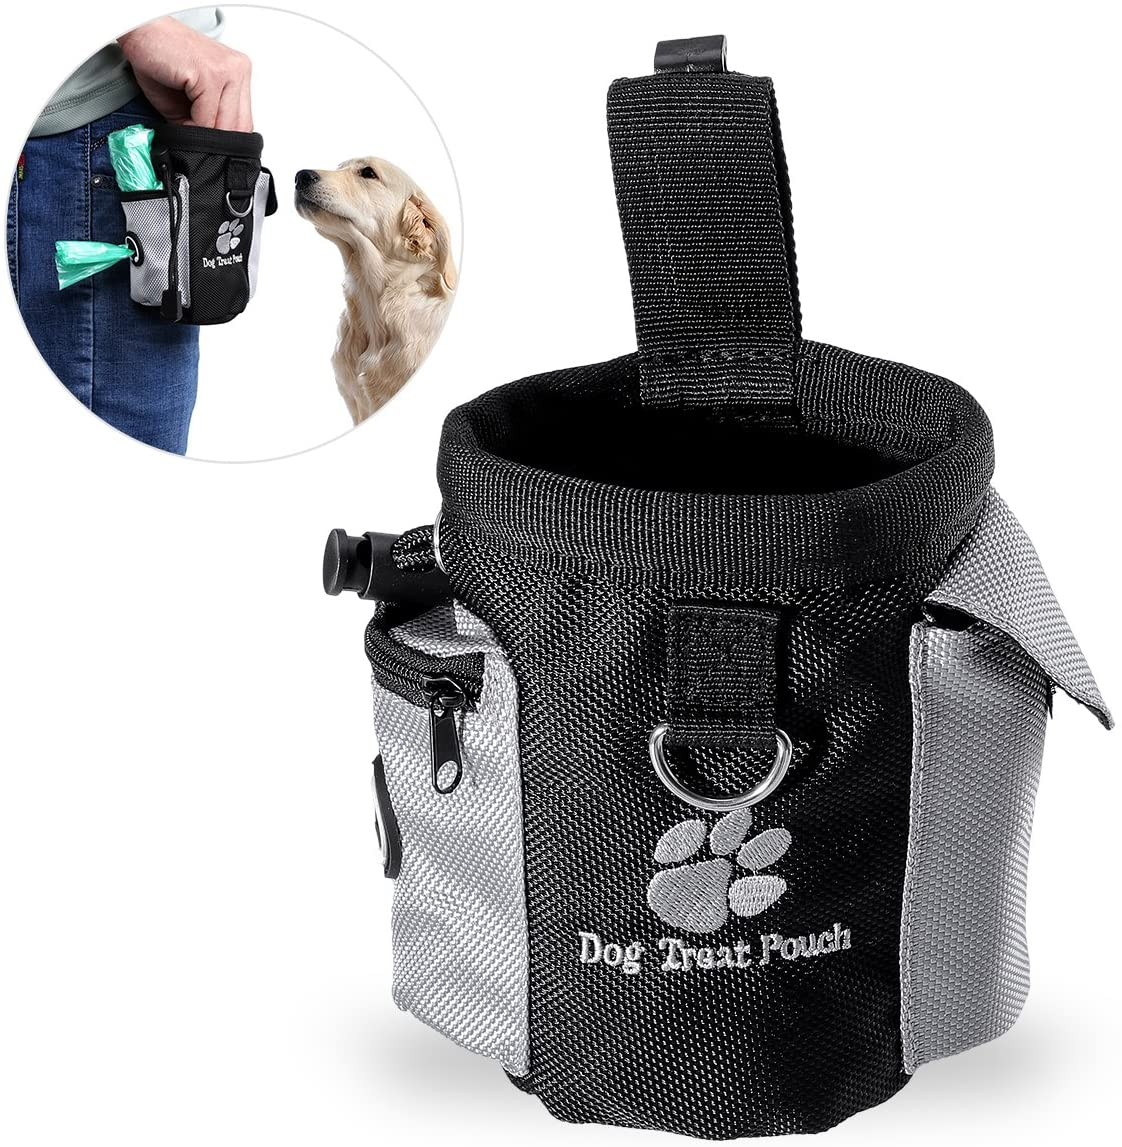 UEETEK Durable Pet Treat Bags, Hands Free Dogs Training Pouch, Ergonomic Design Treat Pouch and Training Waist Bag for Puppies Outdoor Training, 4.9 x 3.1 x 4.9 inch